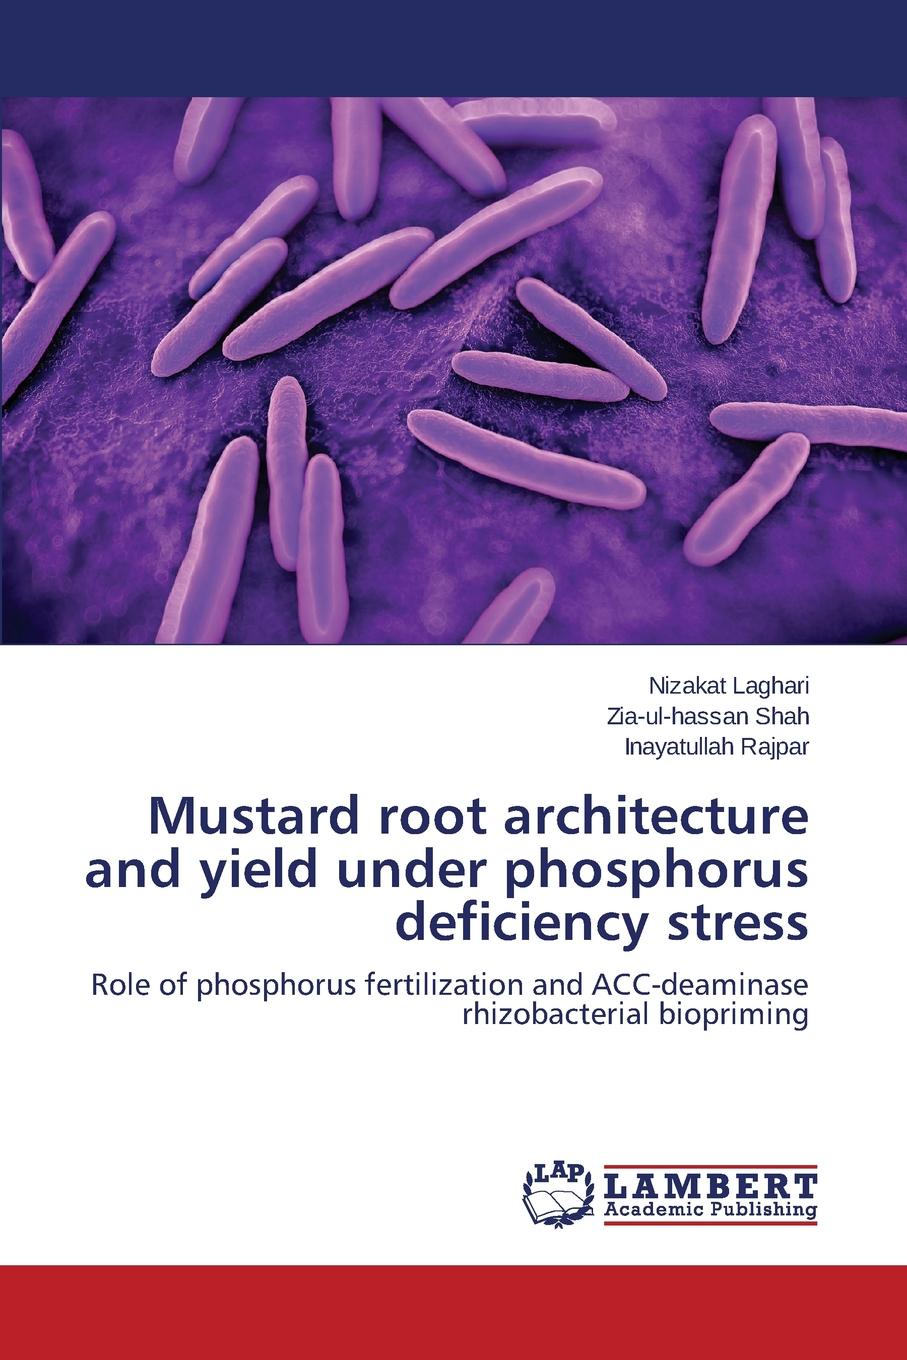 Laghari Nizakat, Shah Zia-ul-hassan, Rajpar Inayatullah Mustard root architecture and yield under phosphorus deficiency stress недорго, оригинальная цена